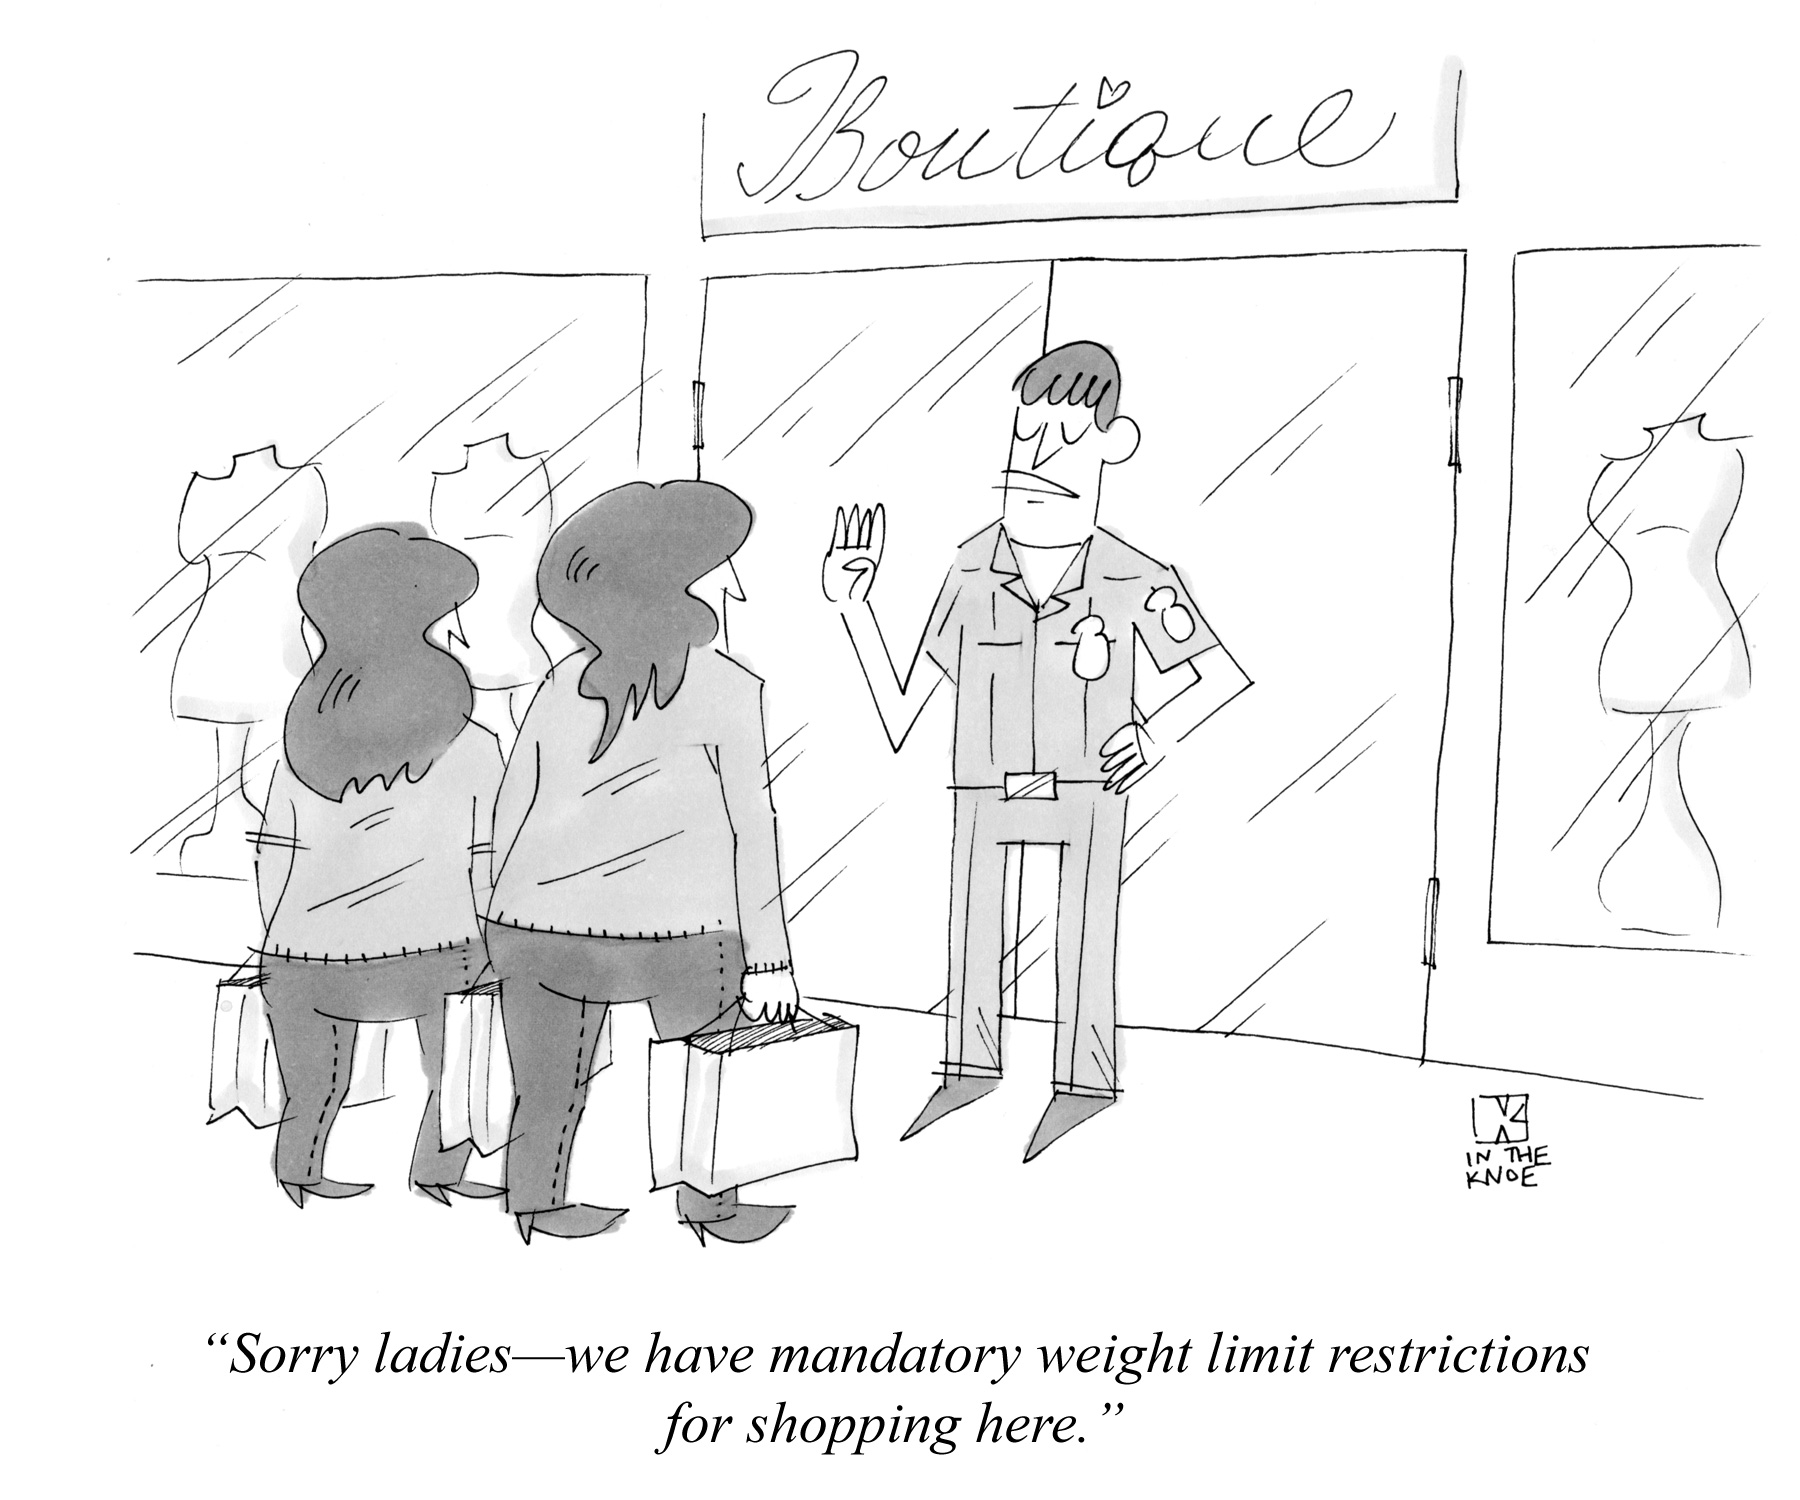 Sorry ladies--we have mandatory weight limit restrictions for shopping here.